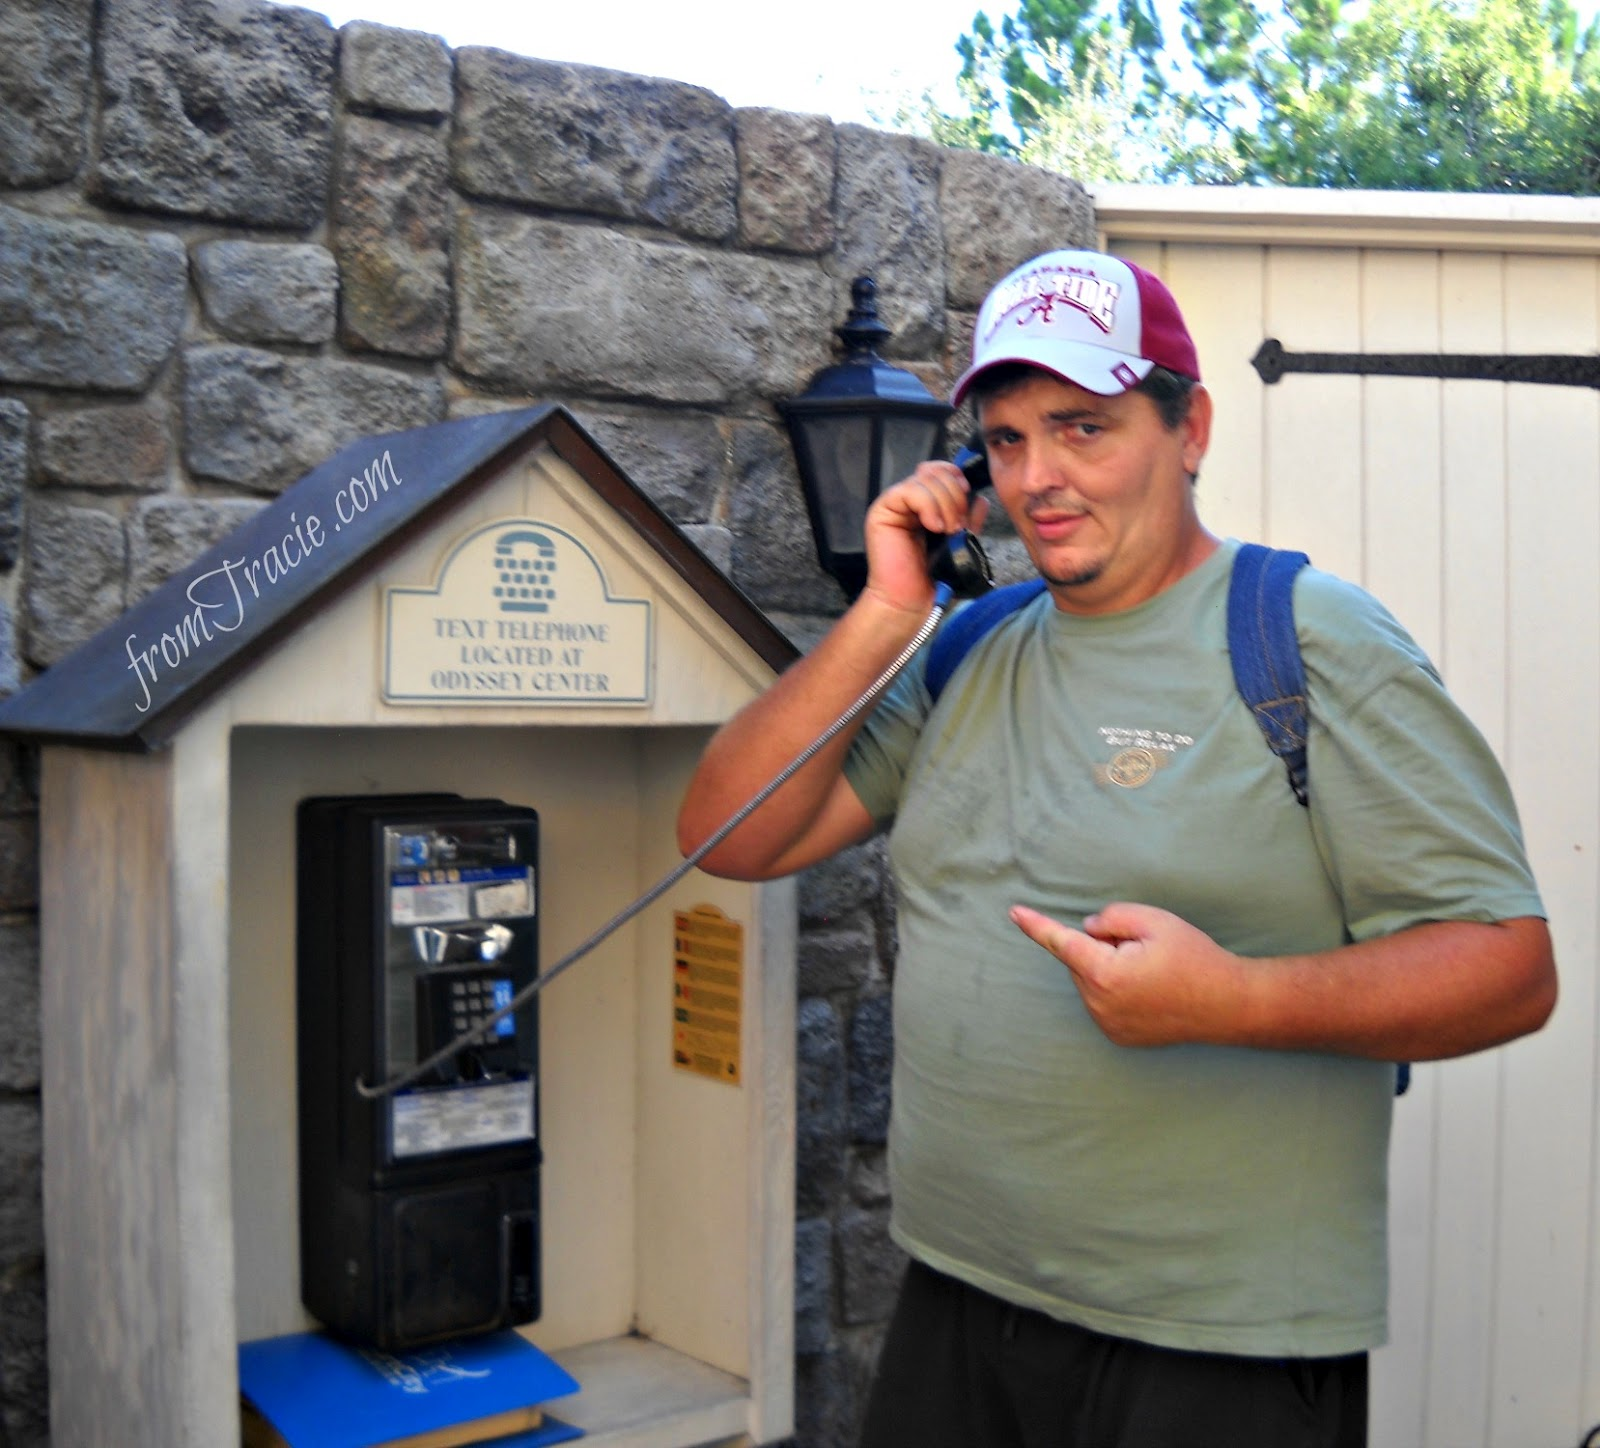 Thomas is suspicious of the pay phone at Disney World